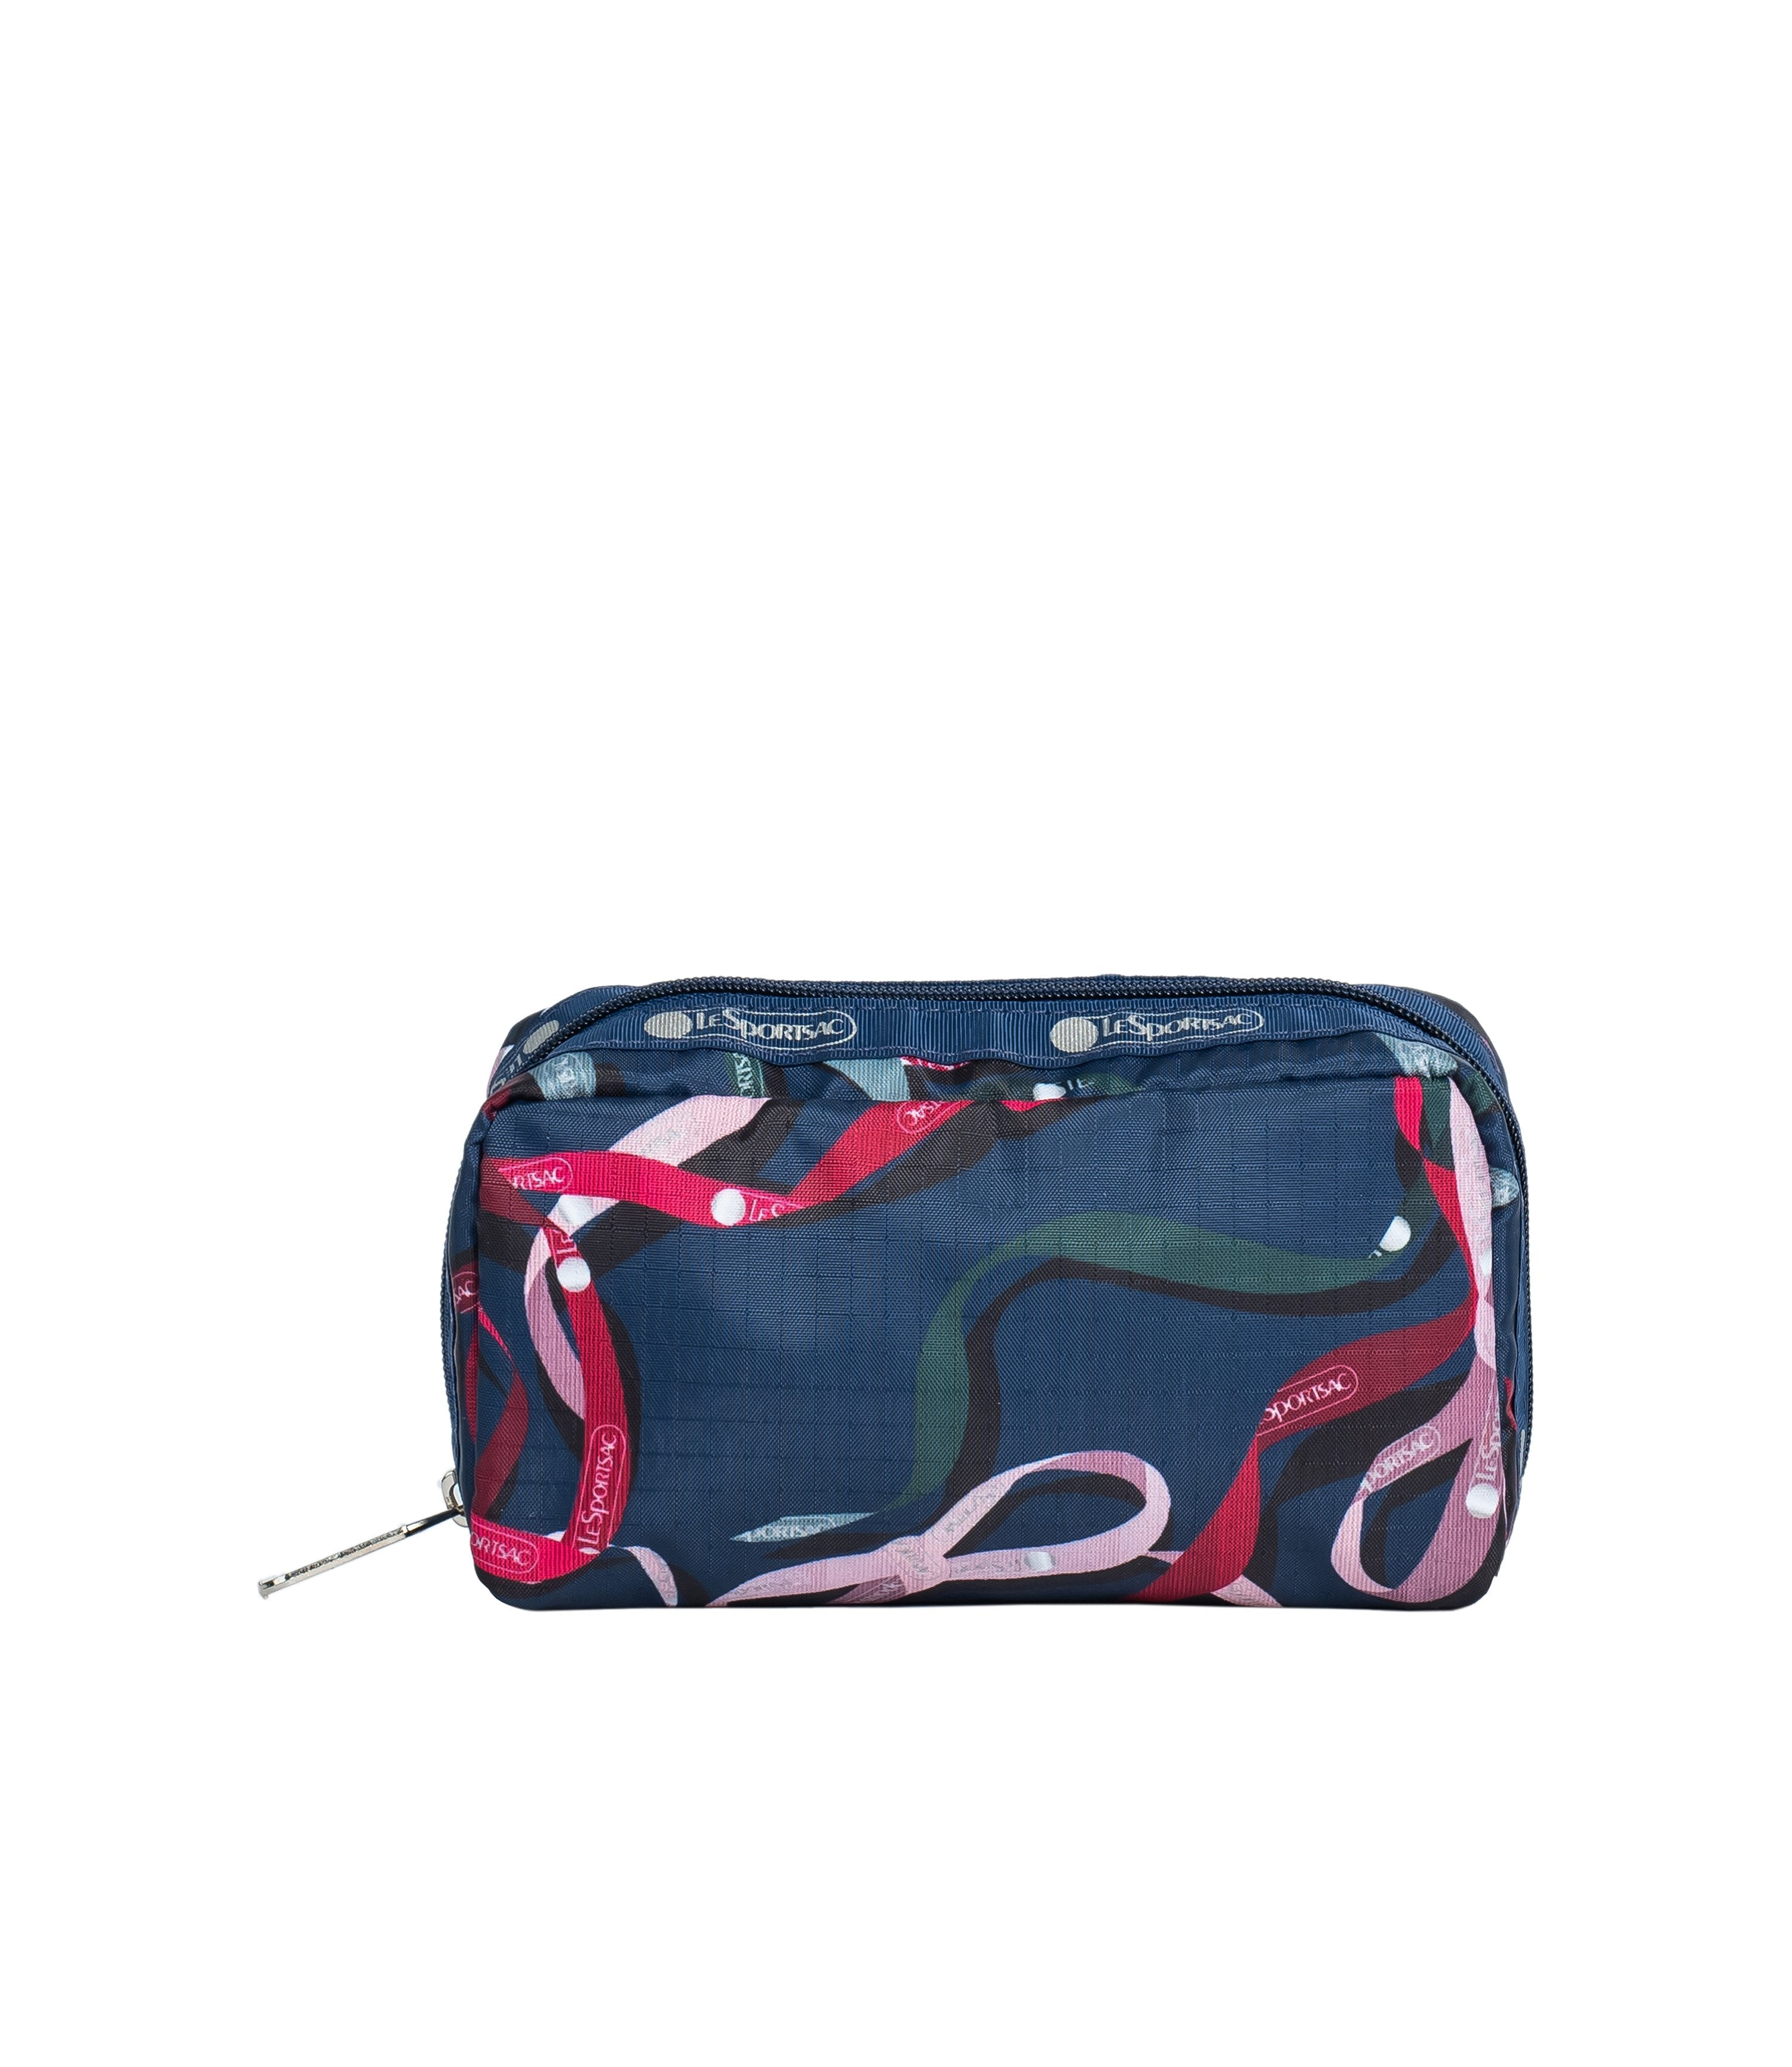 LeSportsac - Accessories - Rectangular Cosmetic - Ribbons Navy print